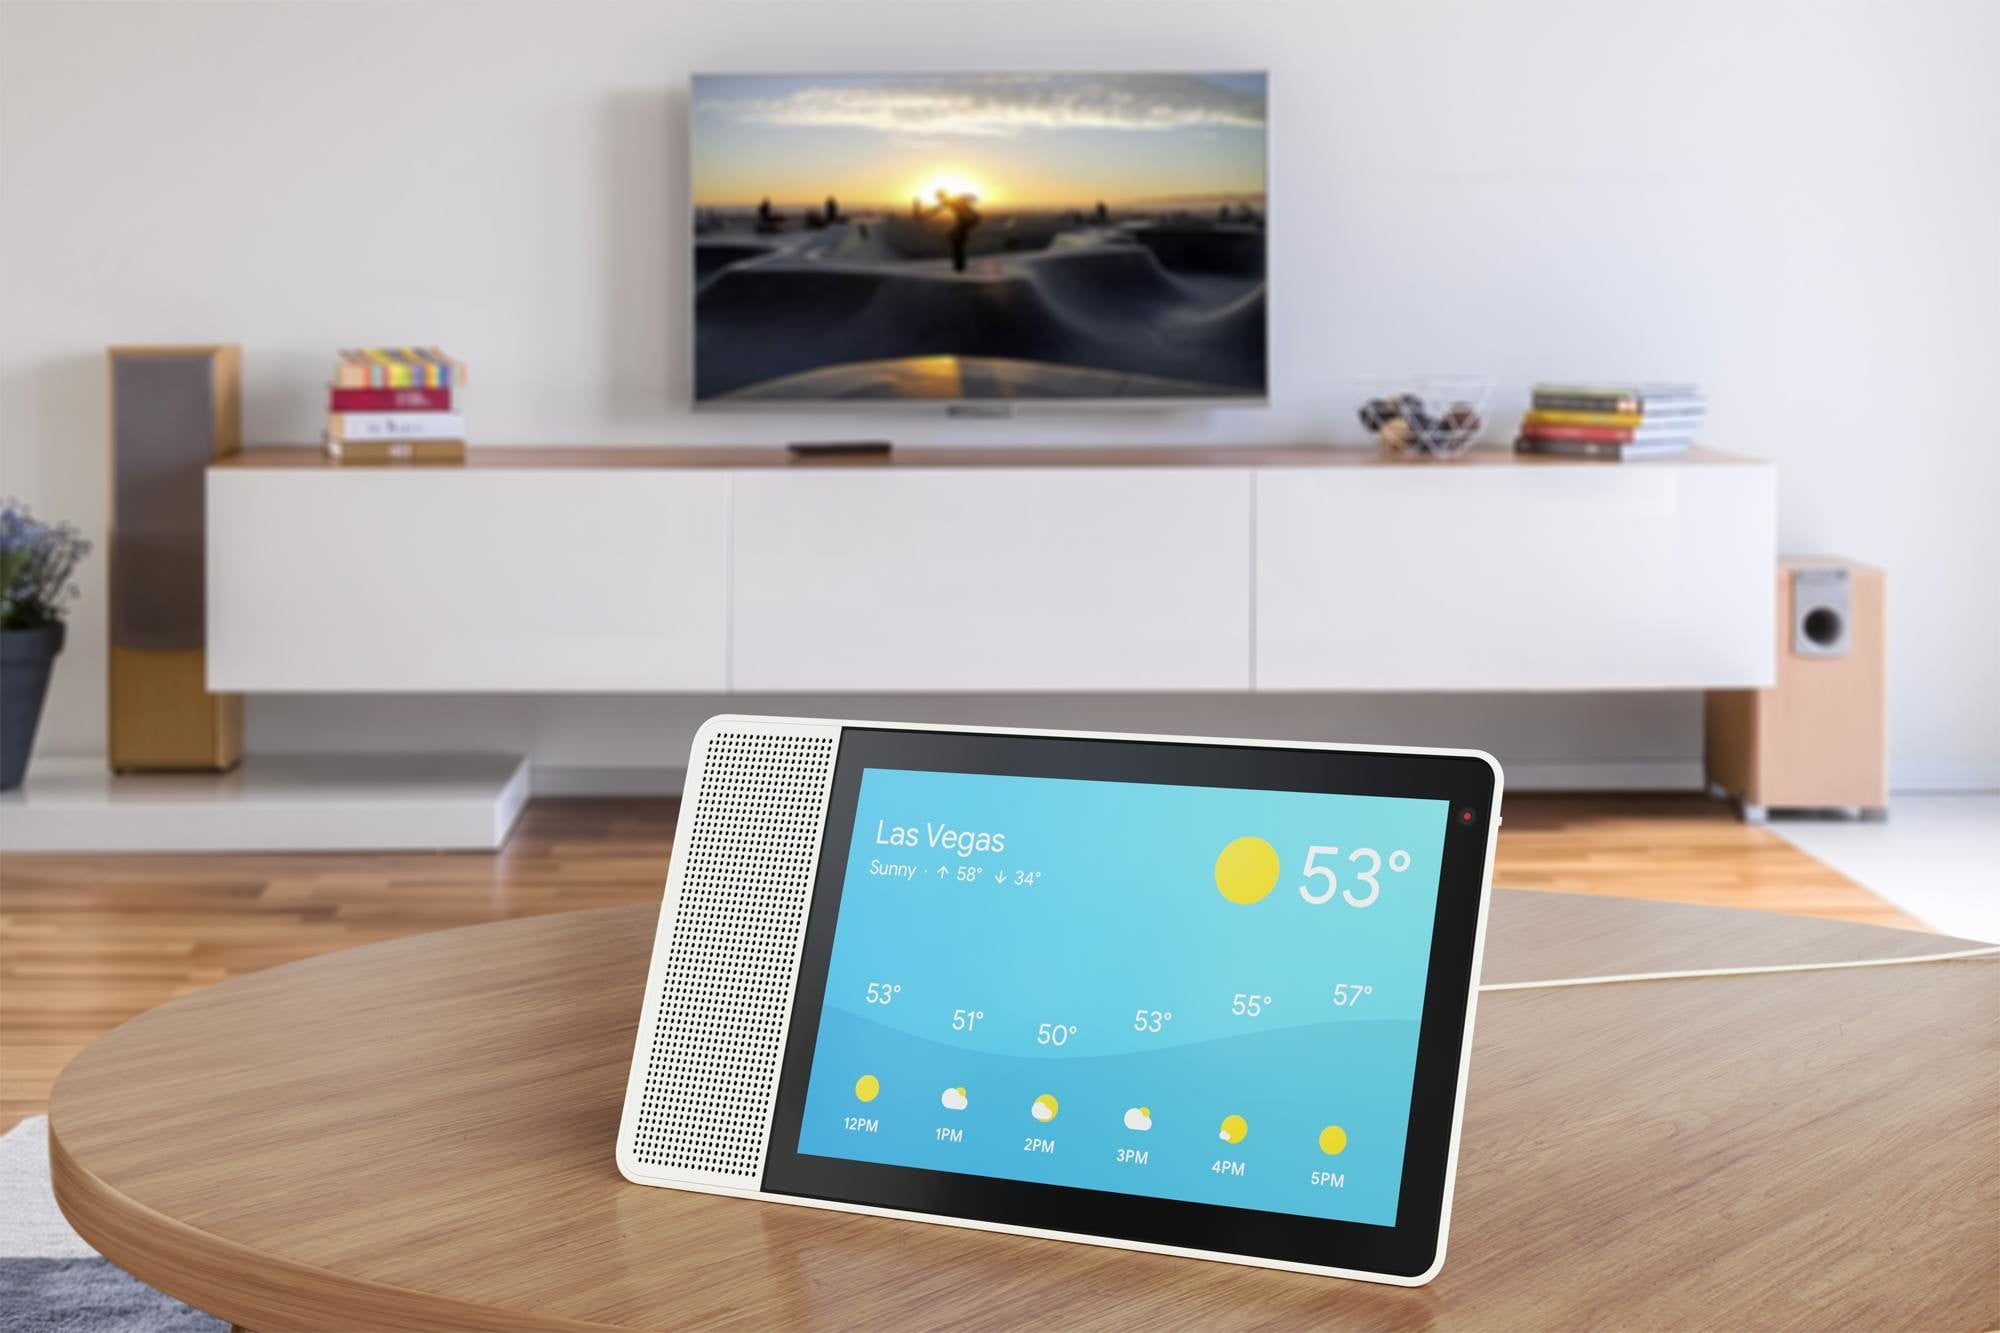 How to Set Up Your Lenovo Smart Display | Digital Trends